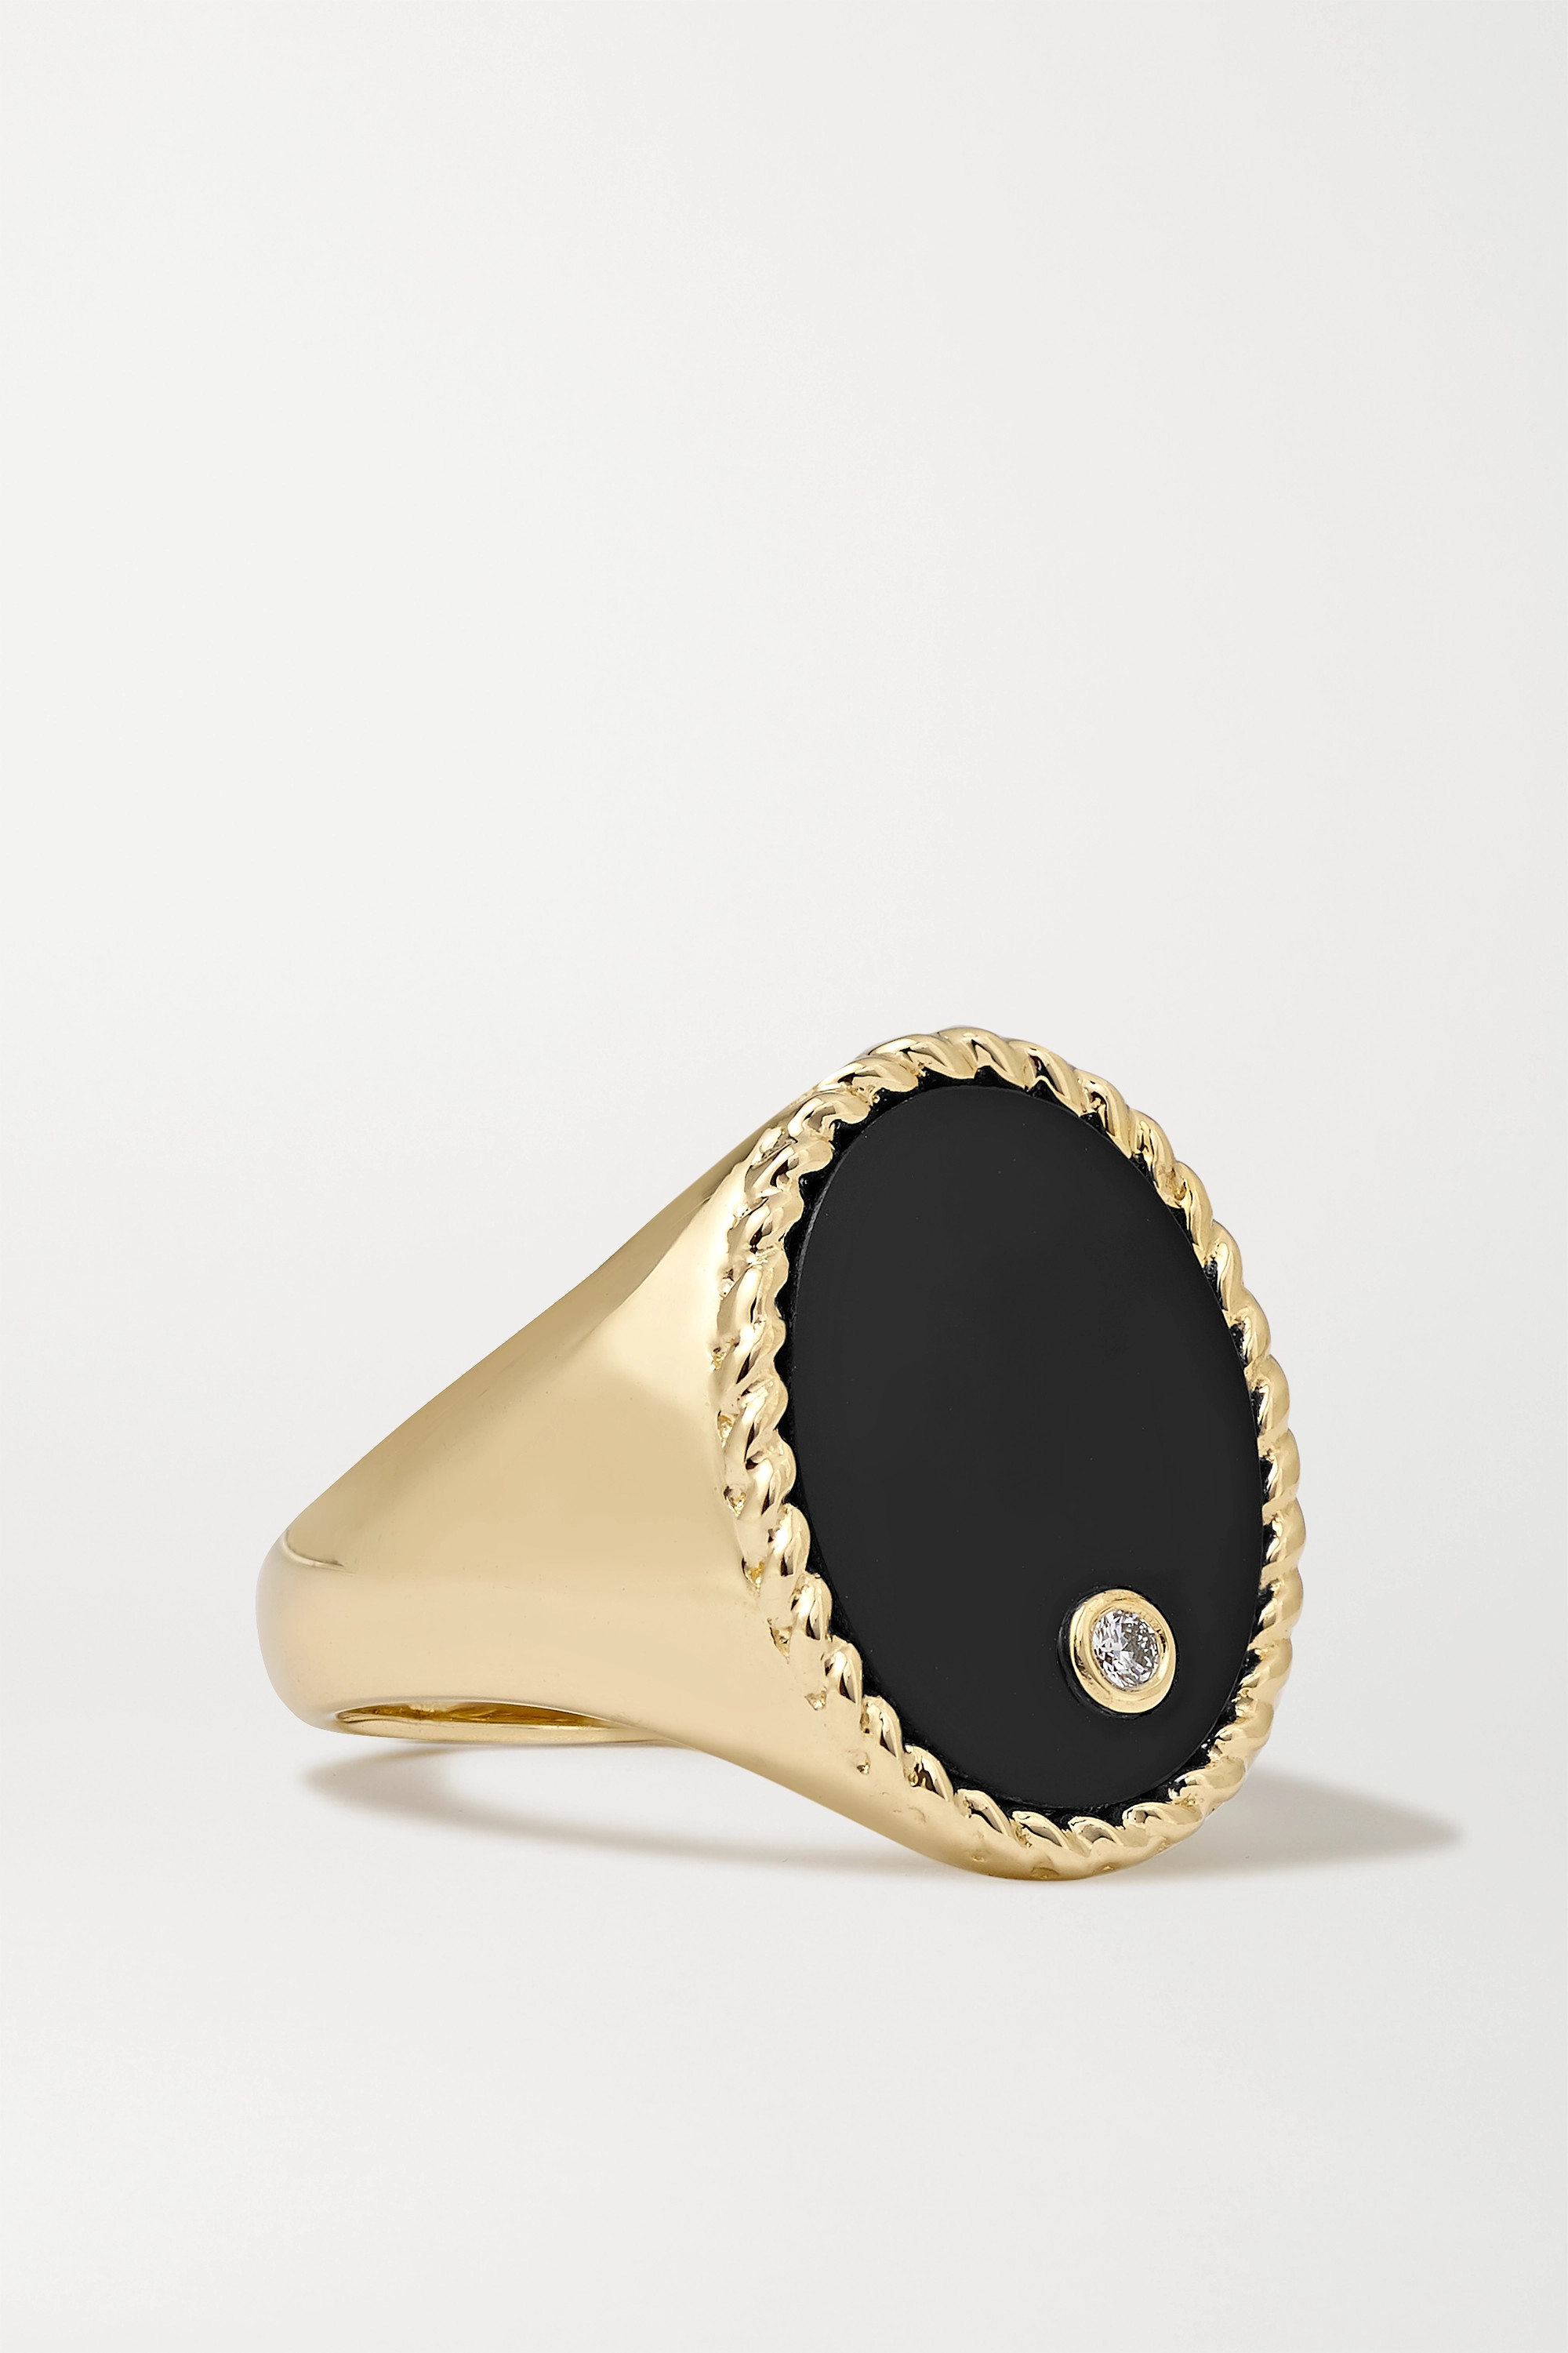 Yvonne Léon - 9-karat gold, onyx and diamond ring